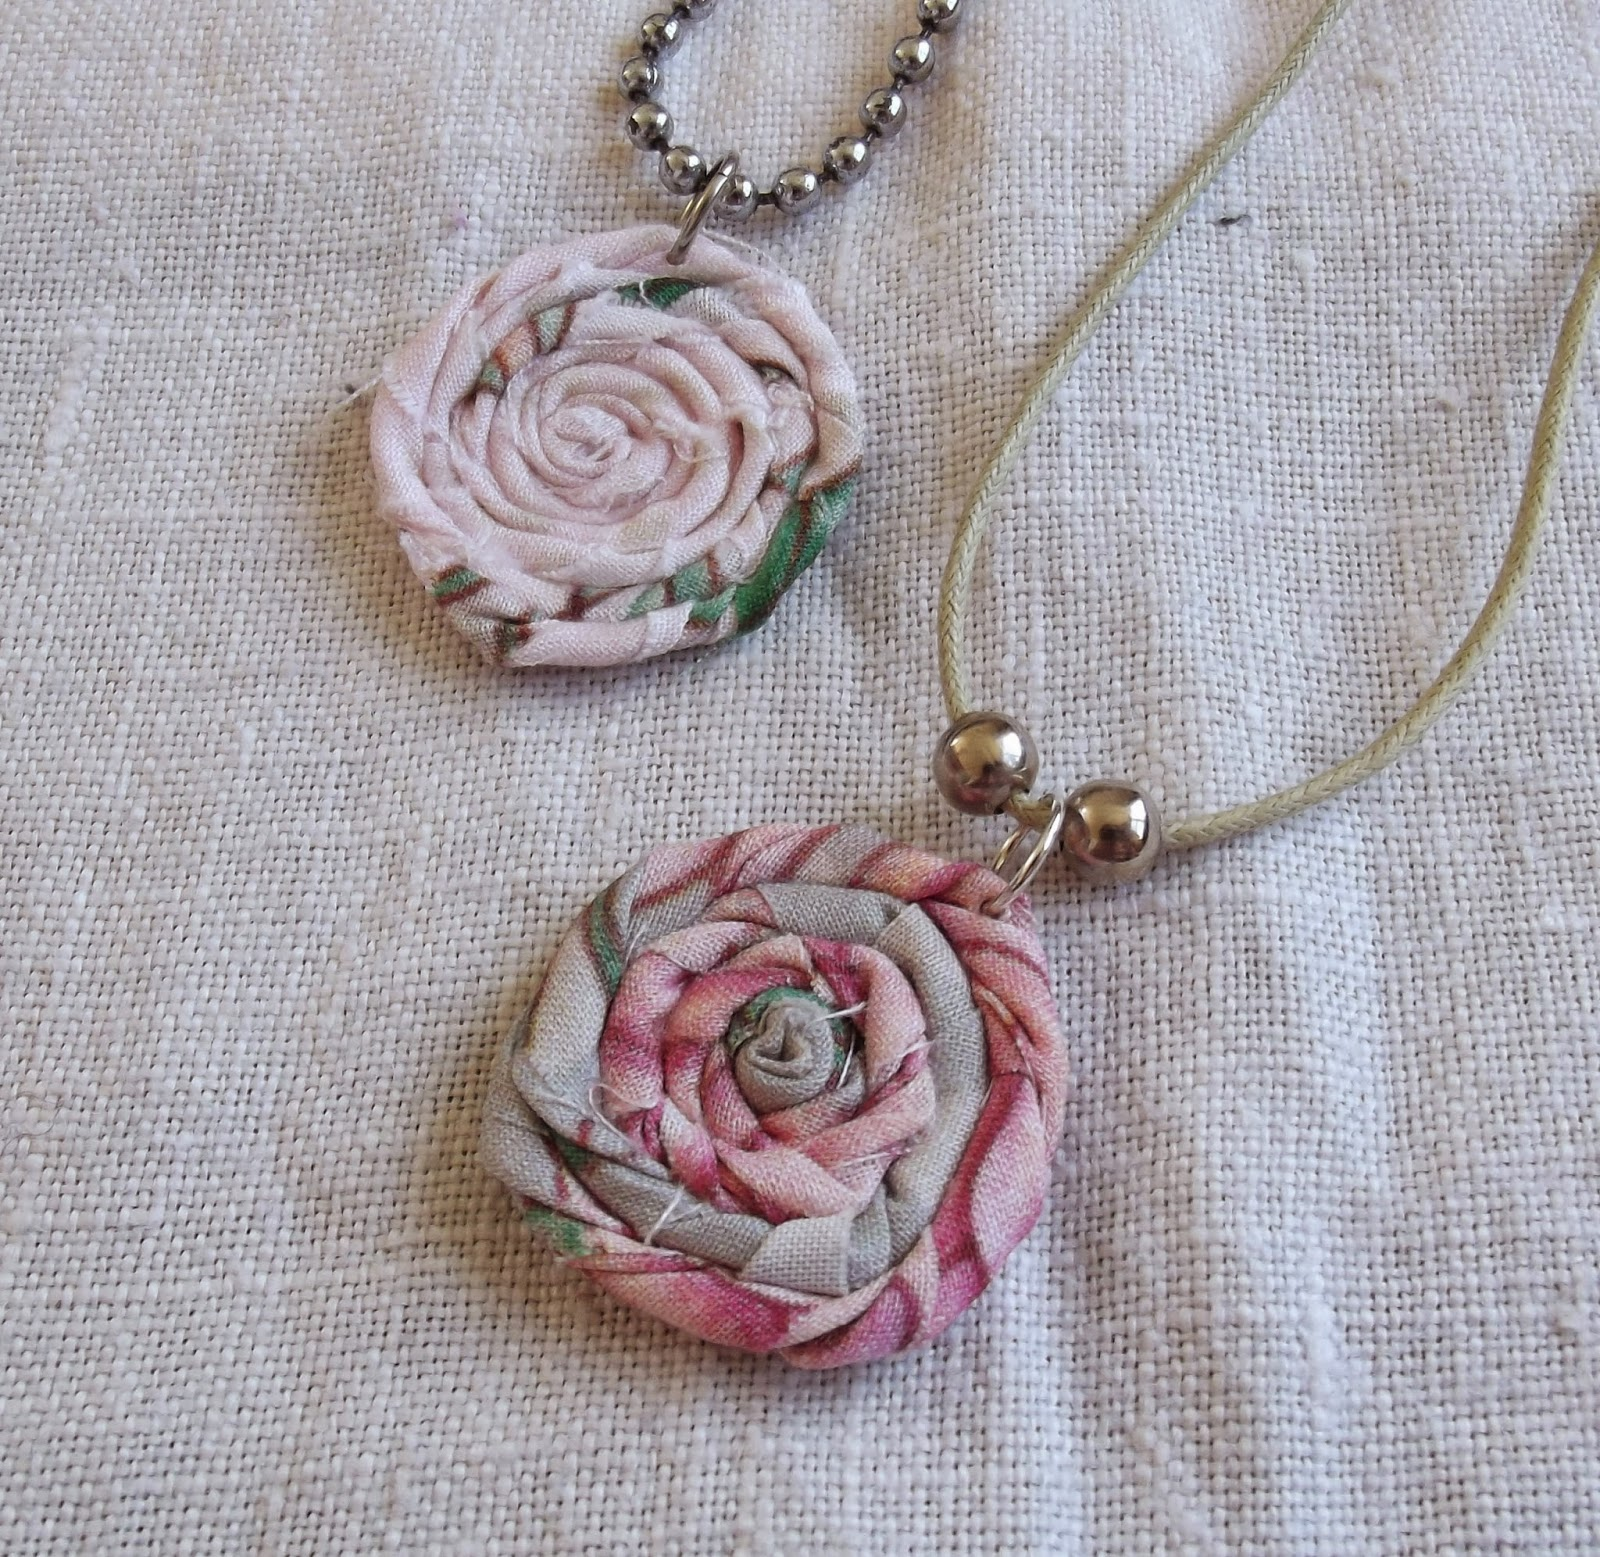 rag rolled rose stud earring tutorial necklace pendants